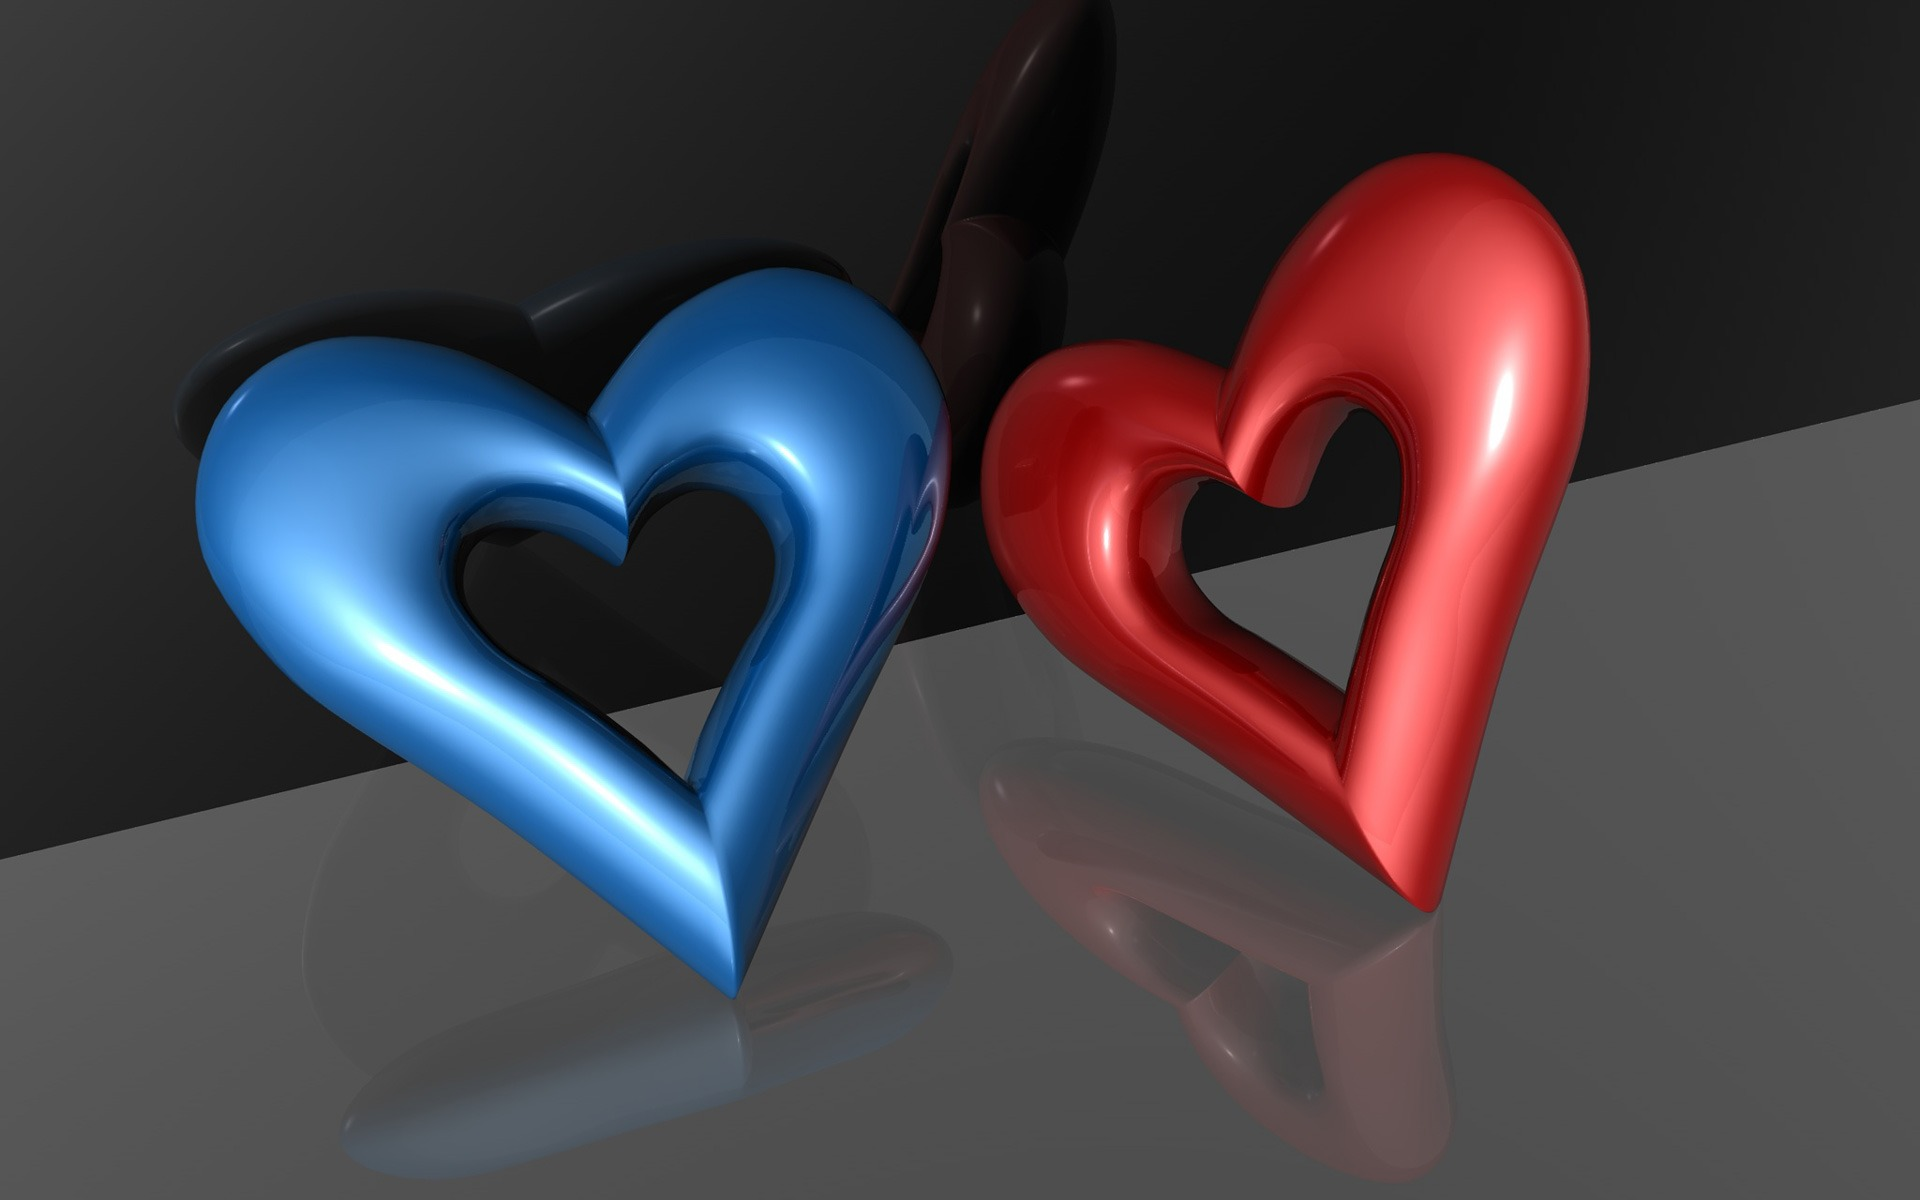 3D Wallpaper Of Heart